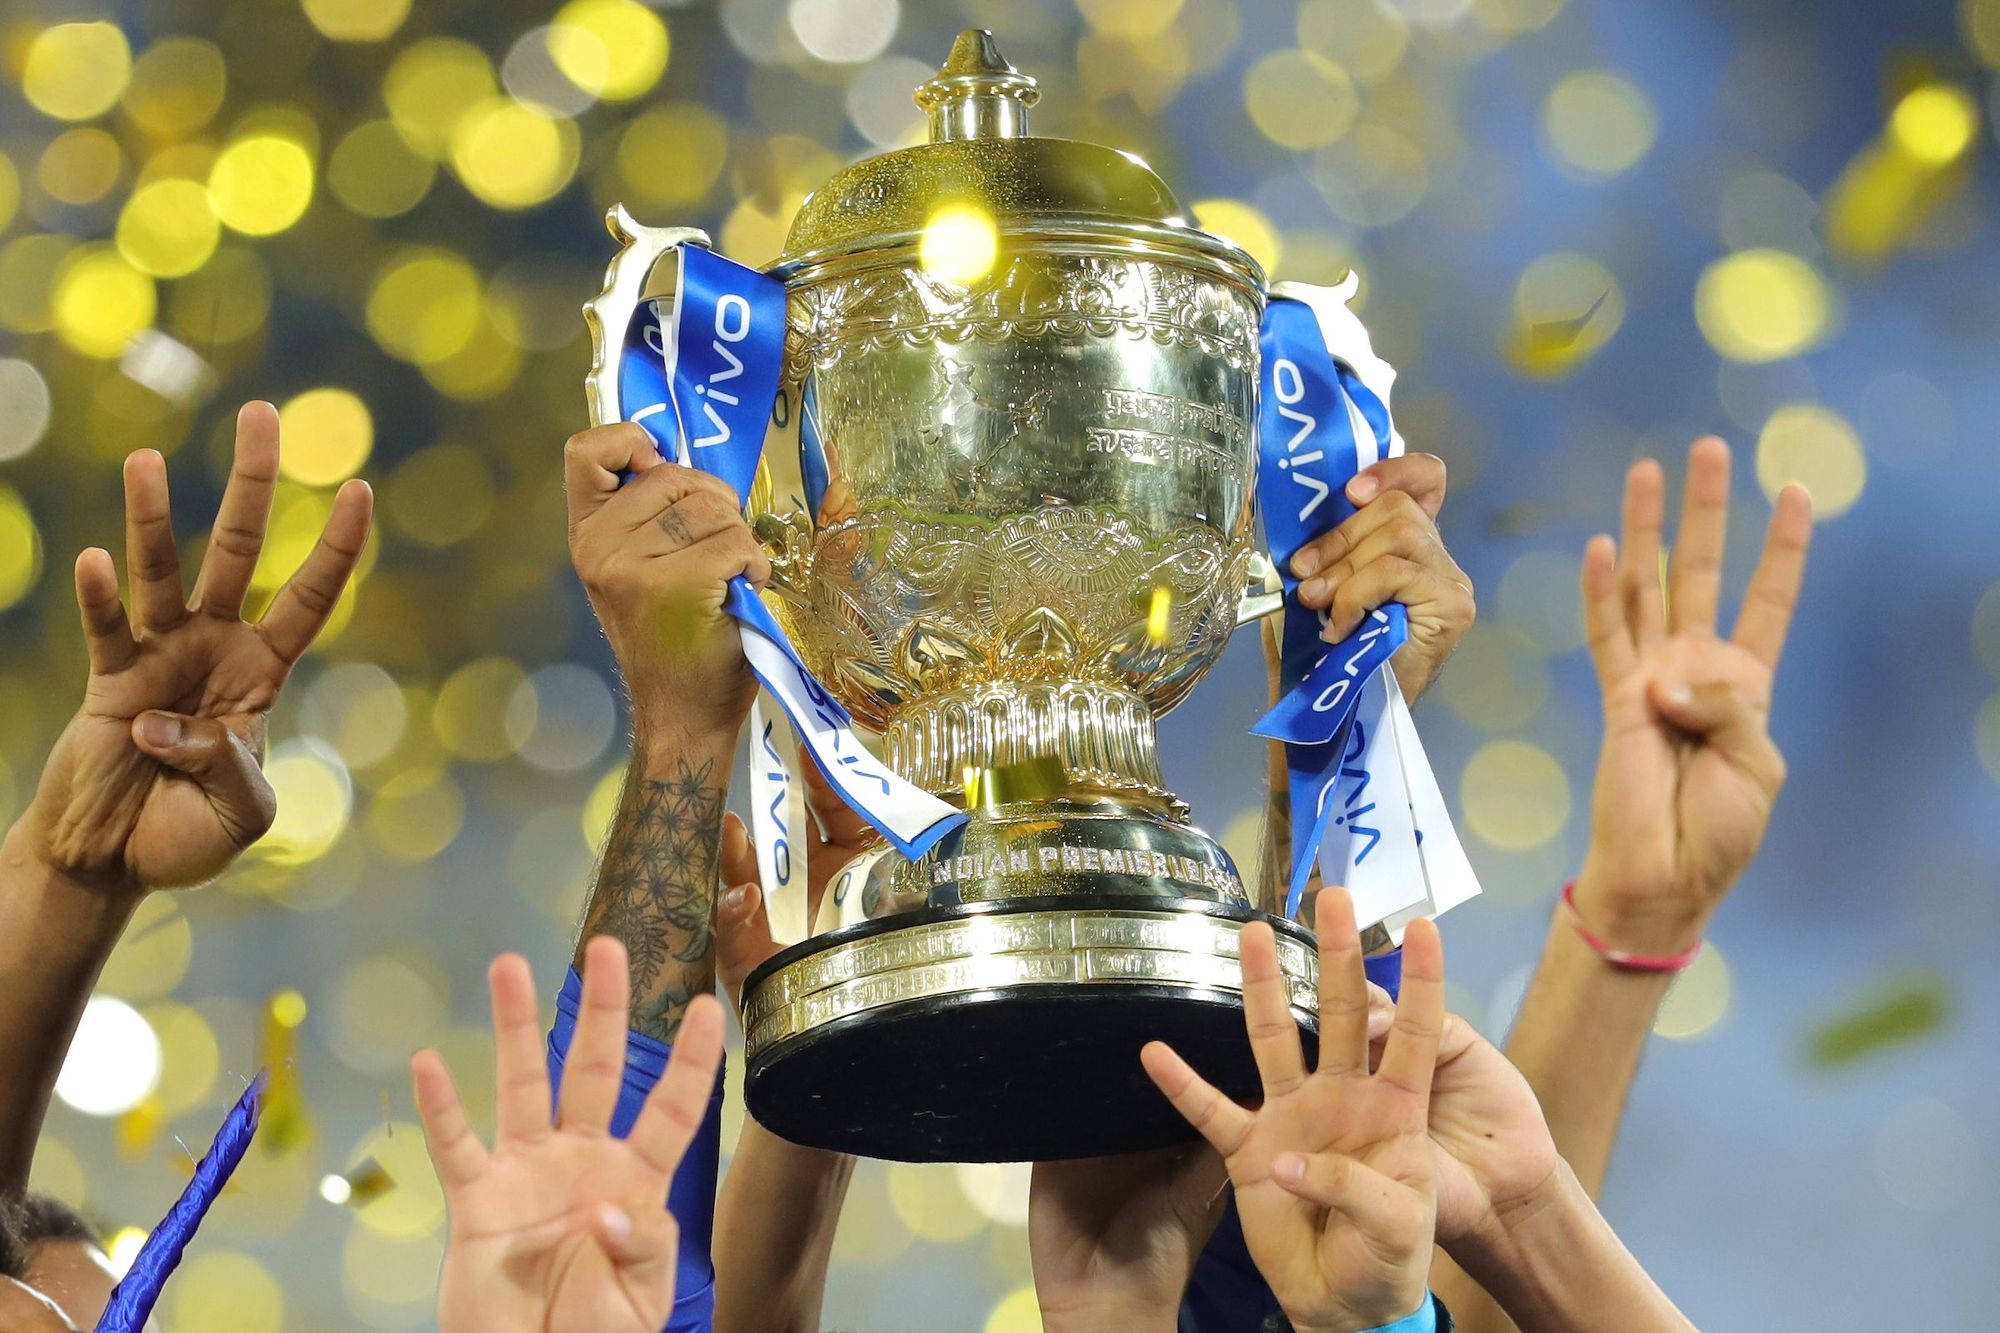 IPL 2020 can be possibly held with foreign players after monsoon season: BCCI CEO Rahul Johri